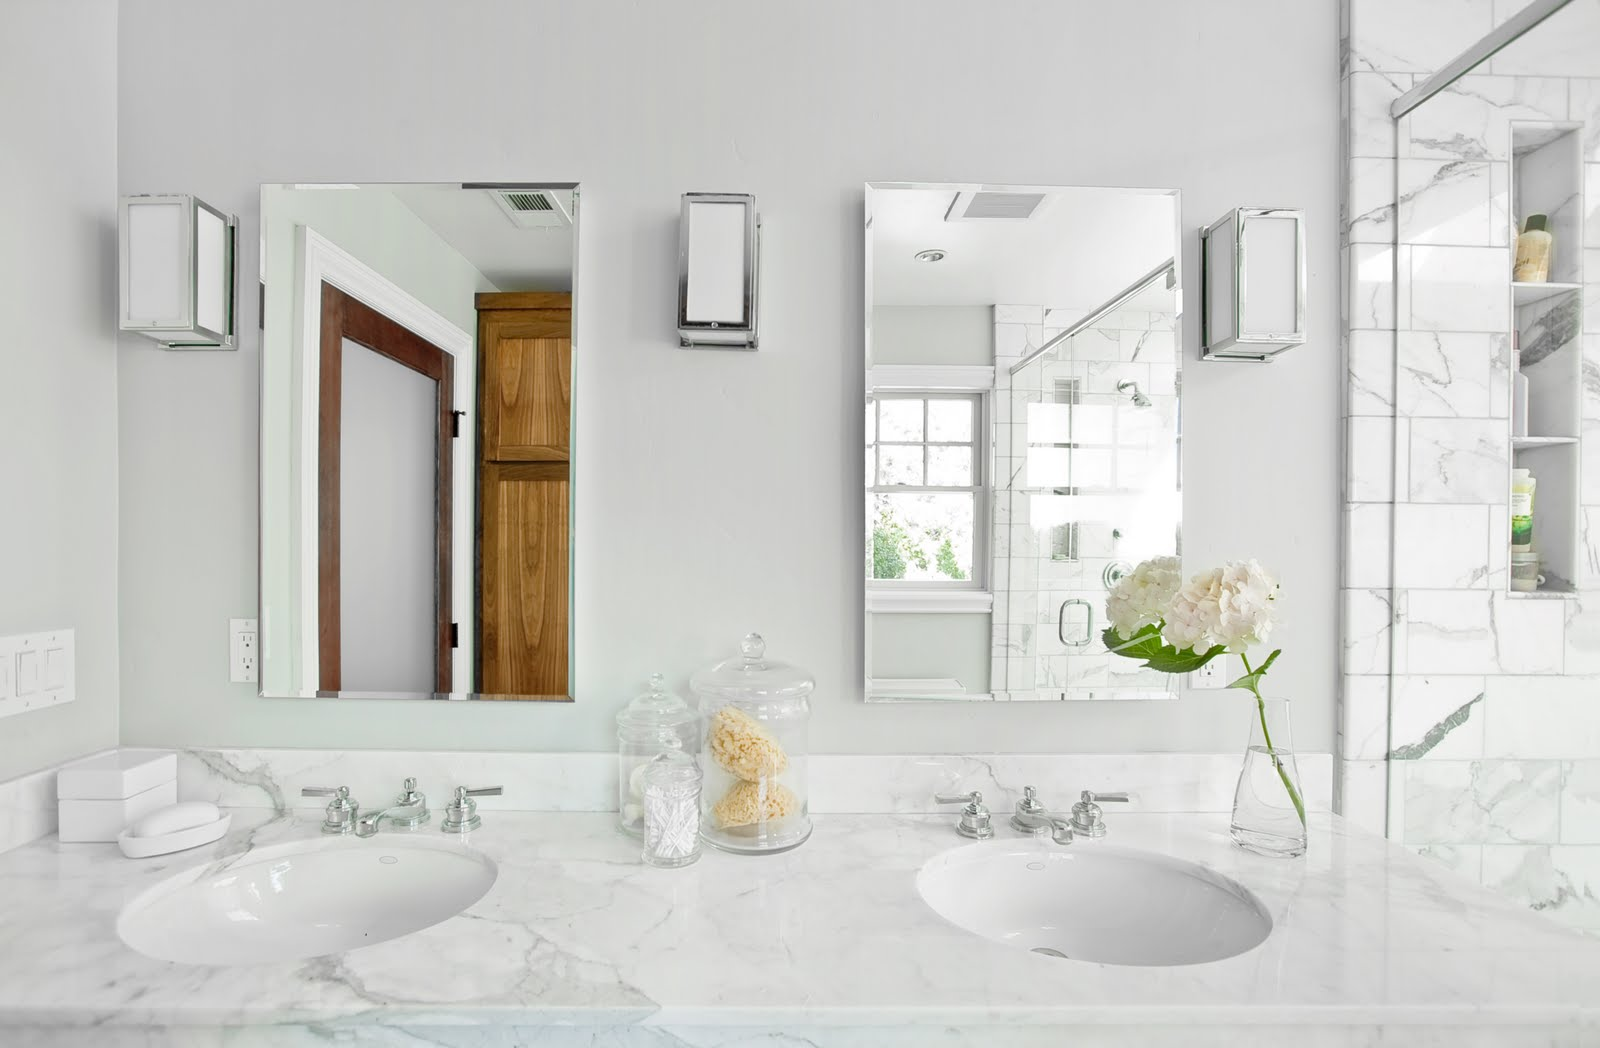 Carrara Marble Bathrooms: How to Decorate Them - HomesFeed